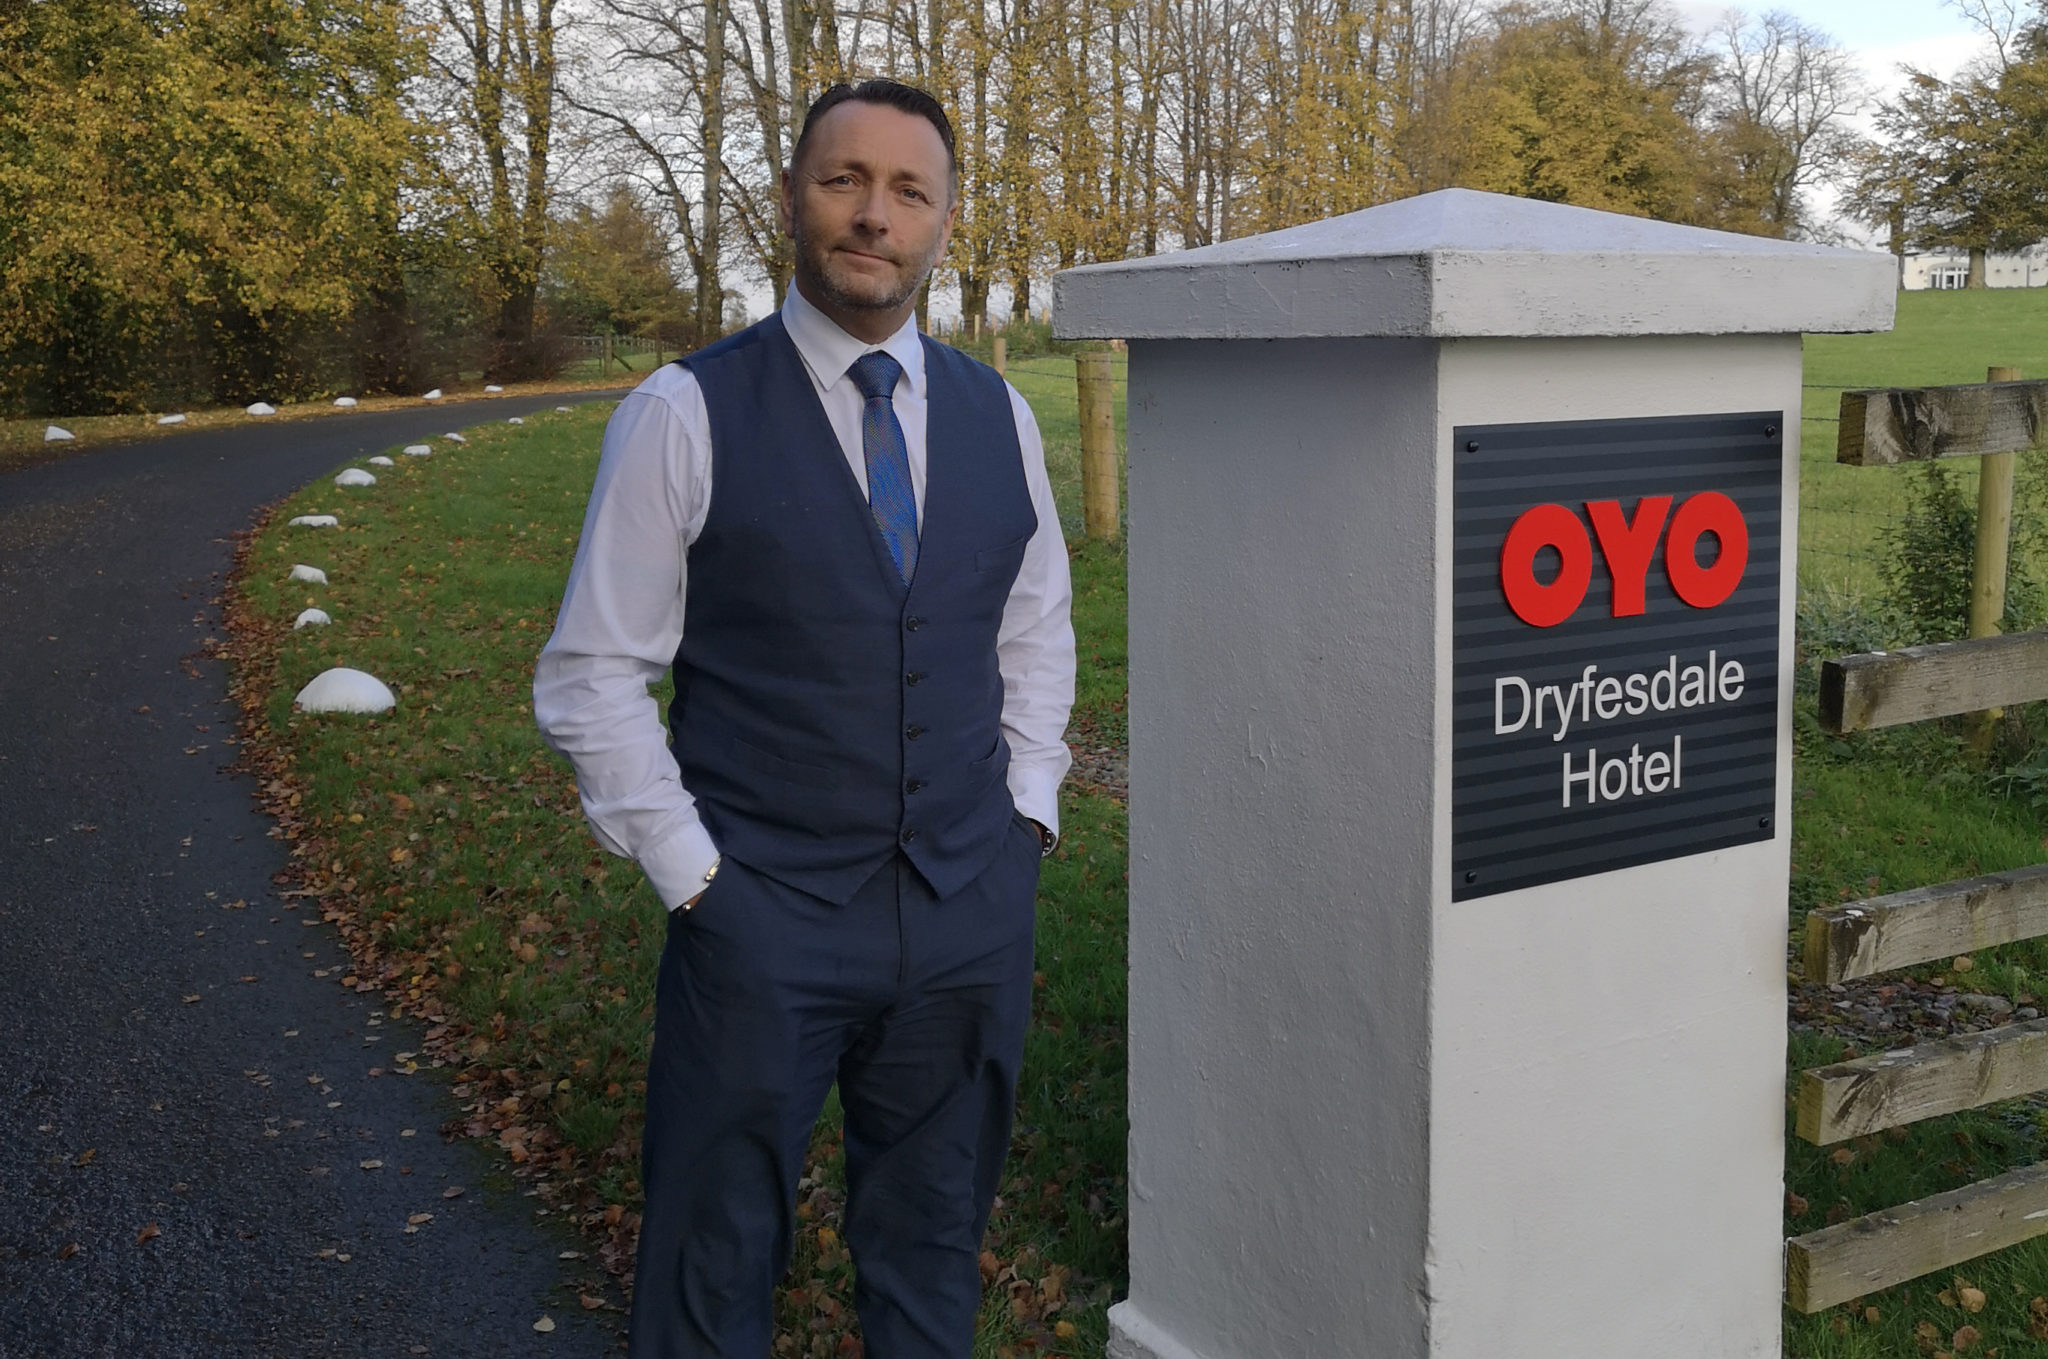 OYO adds first four-star hotel in Scotland - Boutique Hotelier